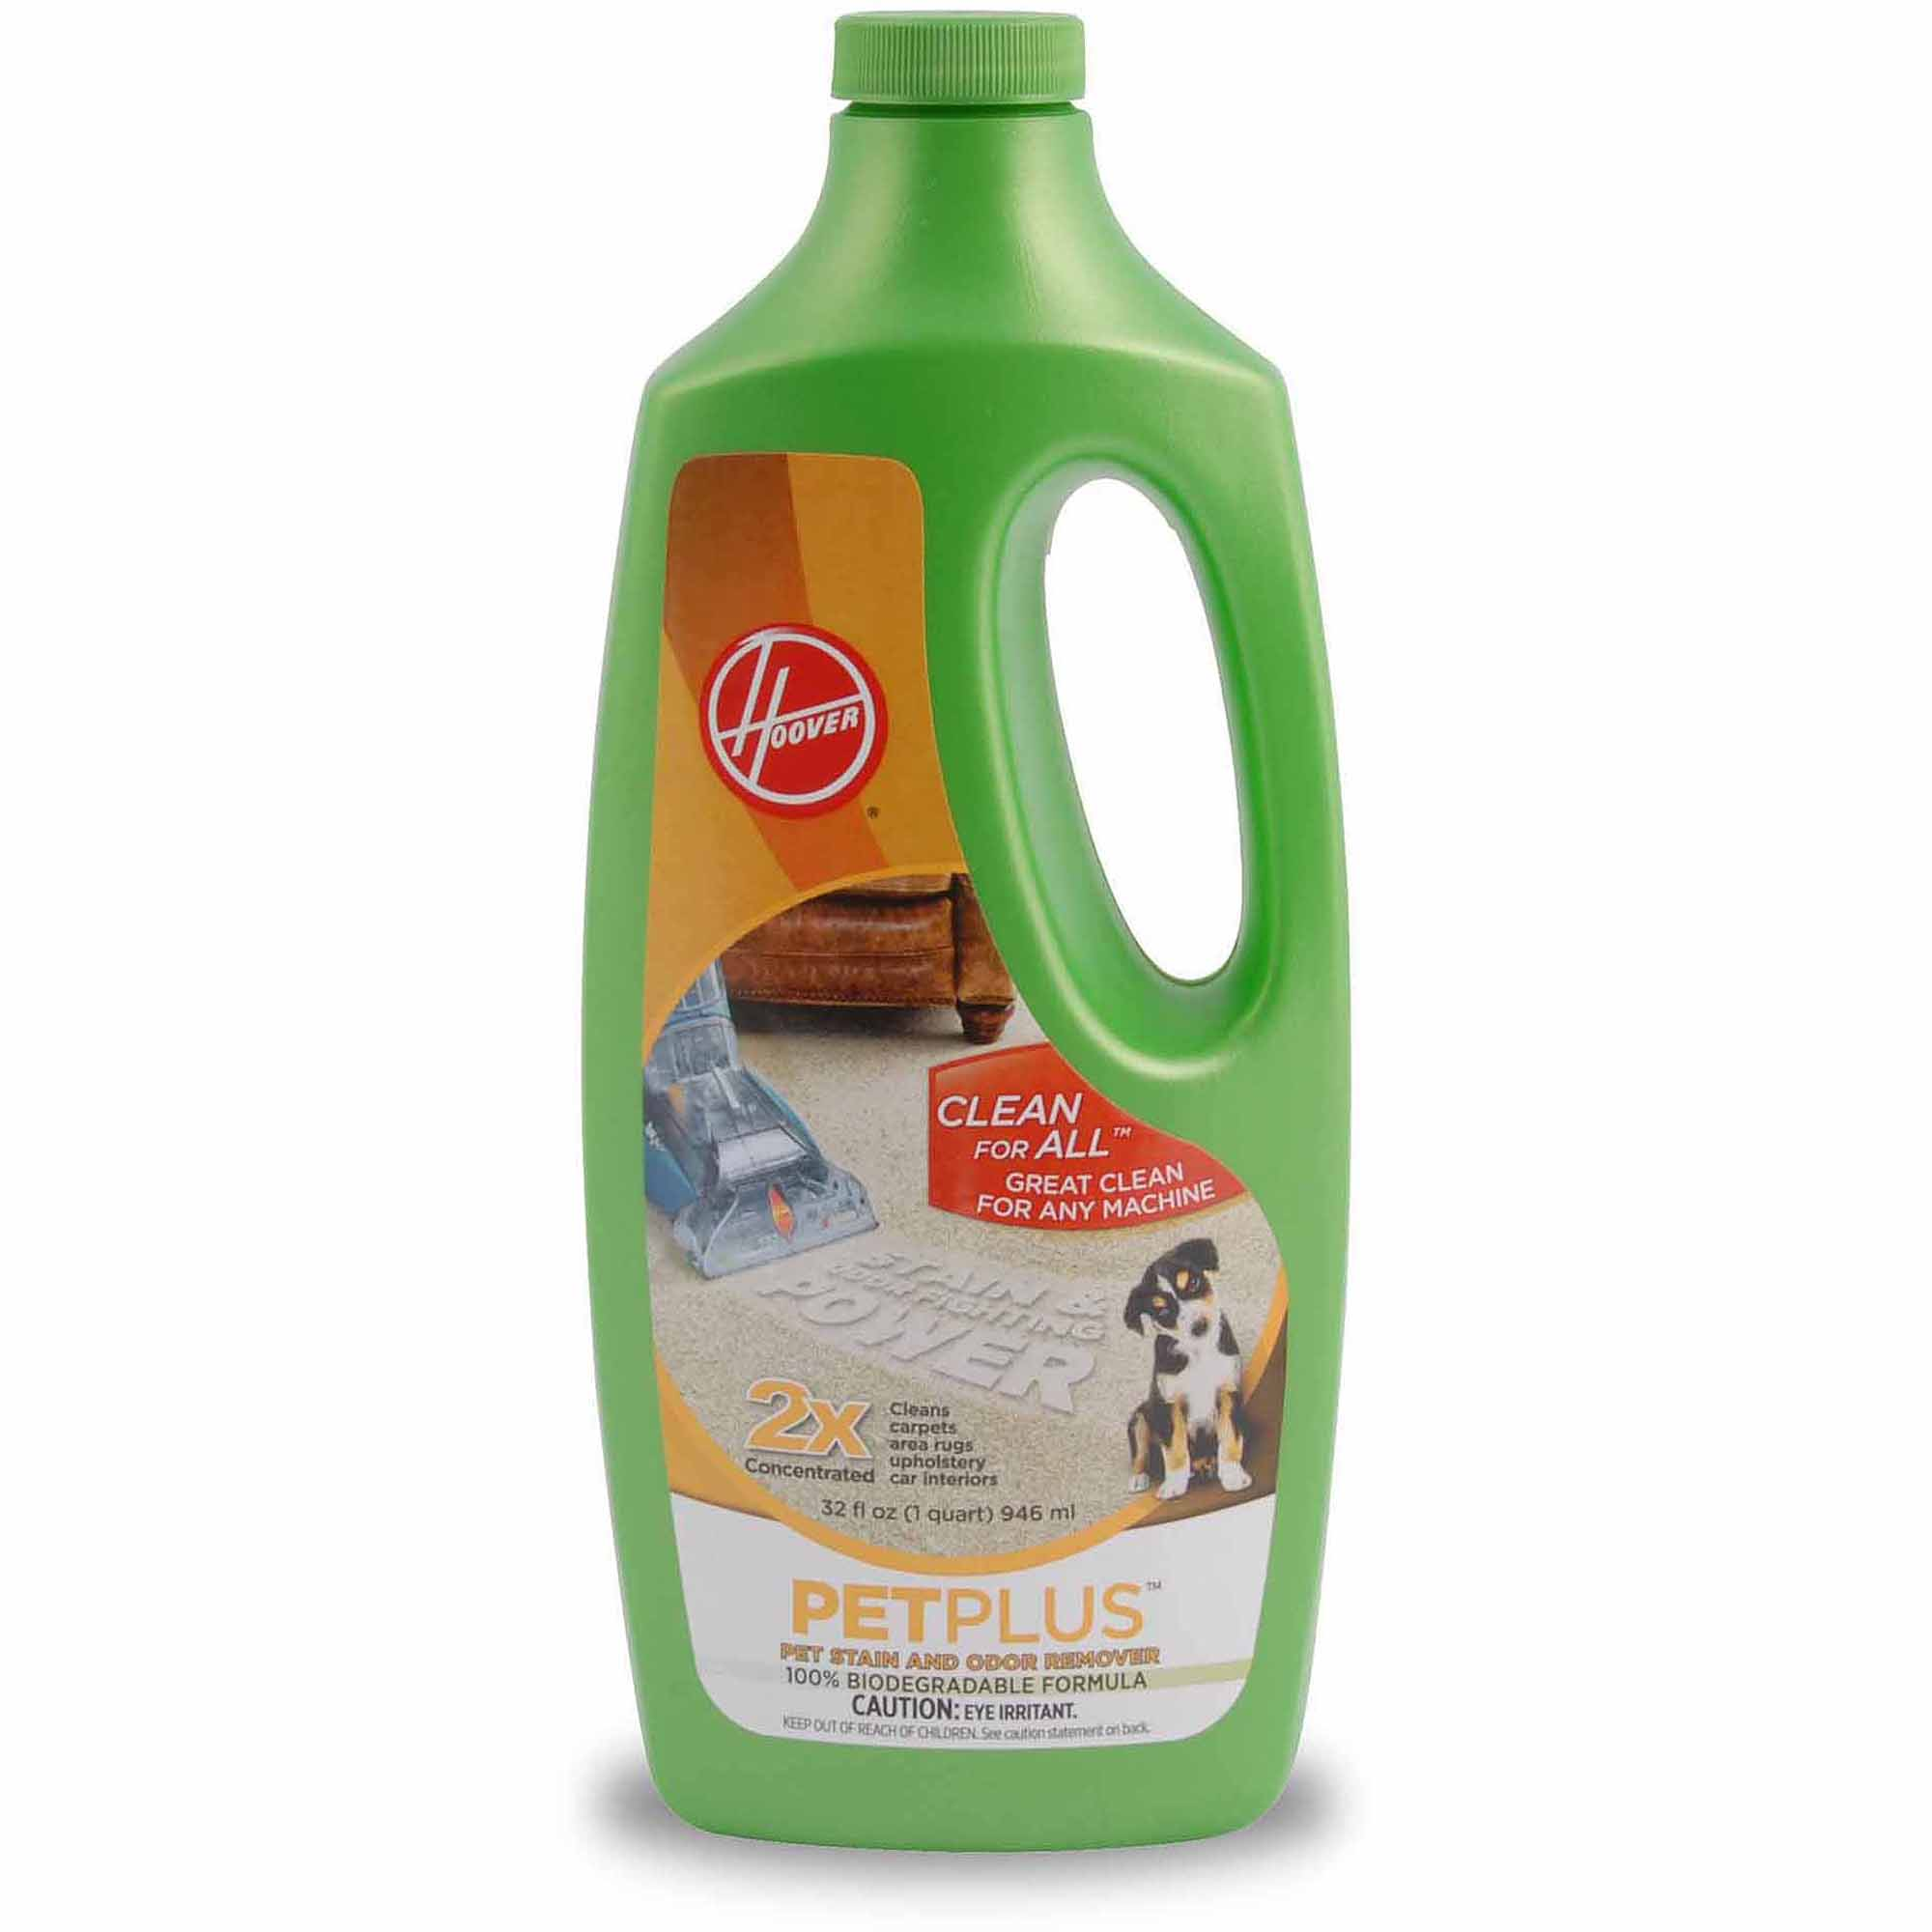 Hoover 2X PetPlus Pet Stain & Odor Remover 32 oz, AH30325